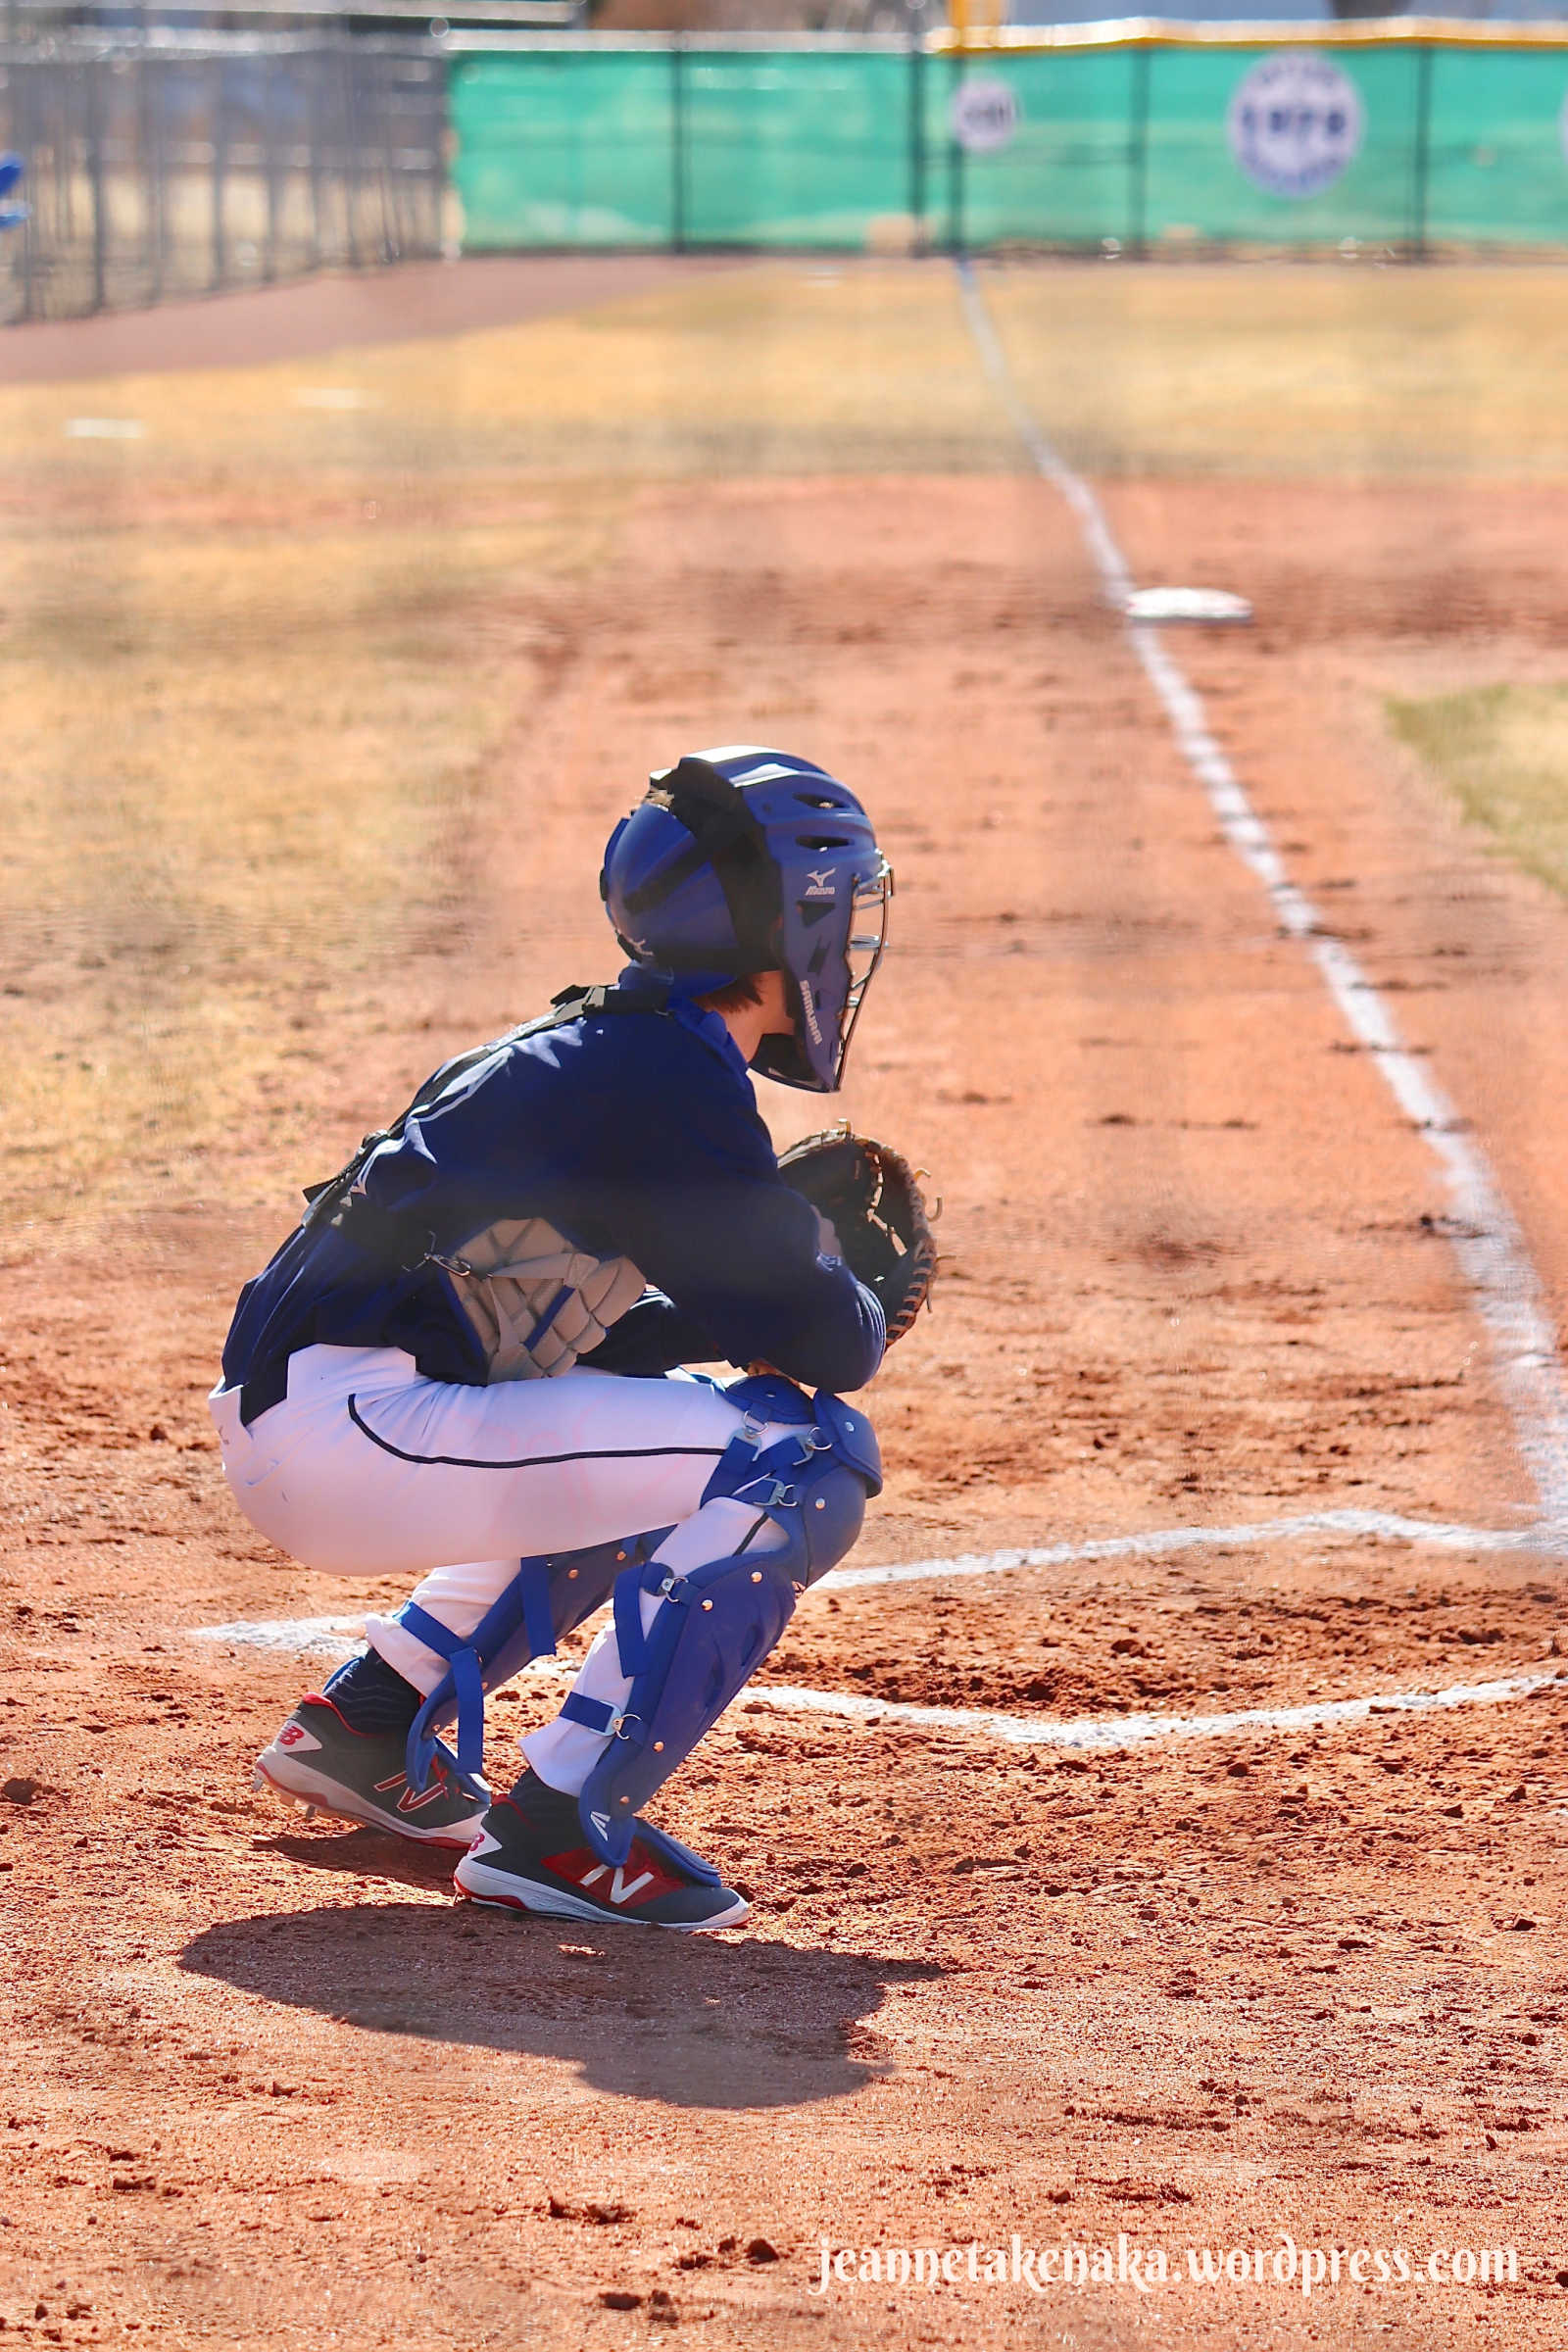 Perspective: Baseball catcher in position waiting for the pitch